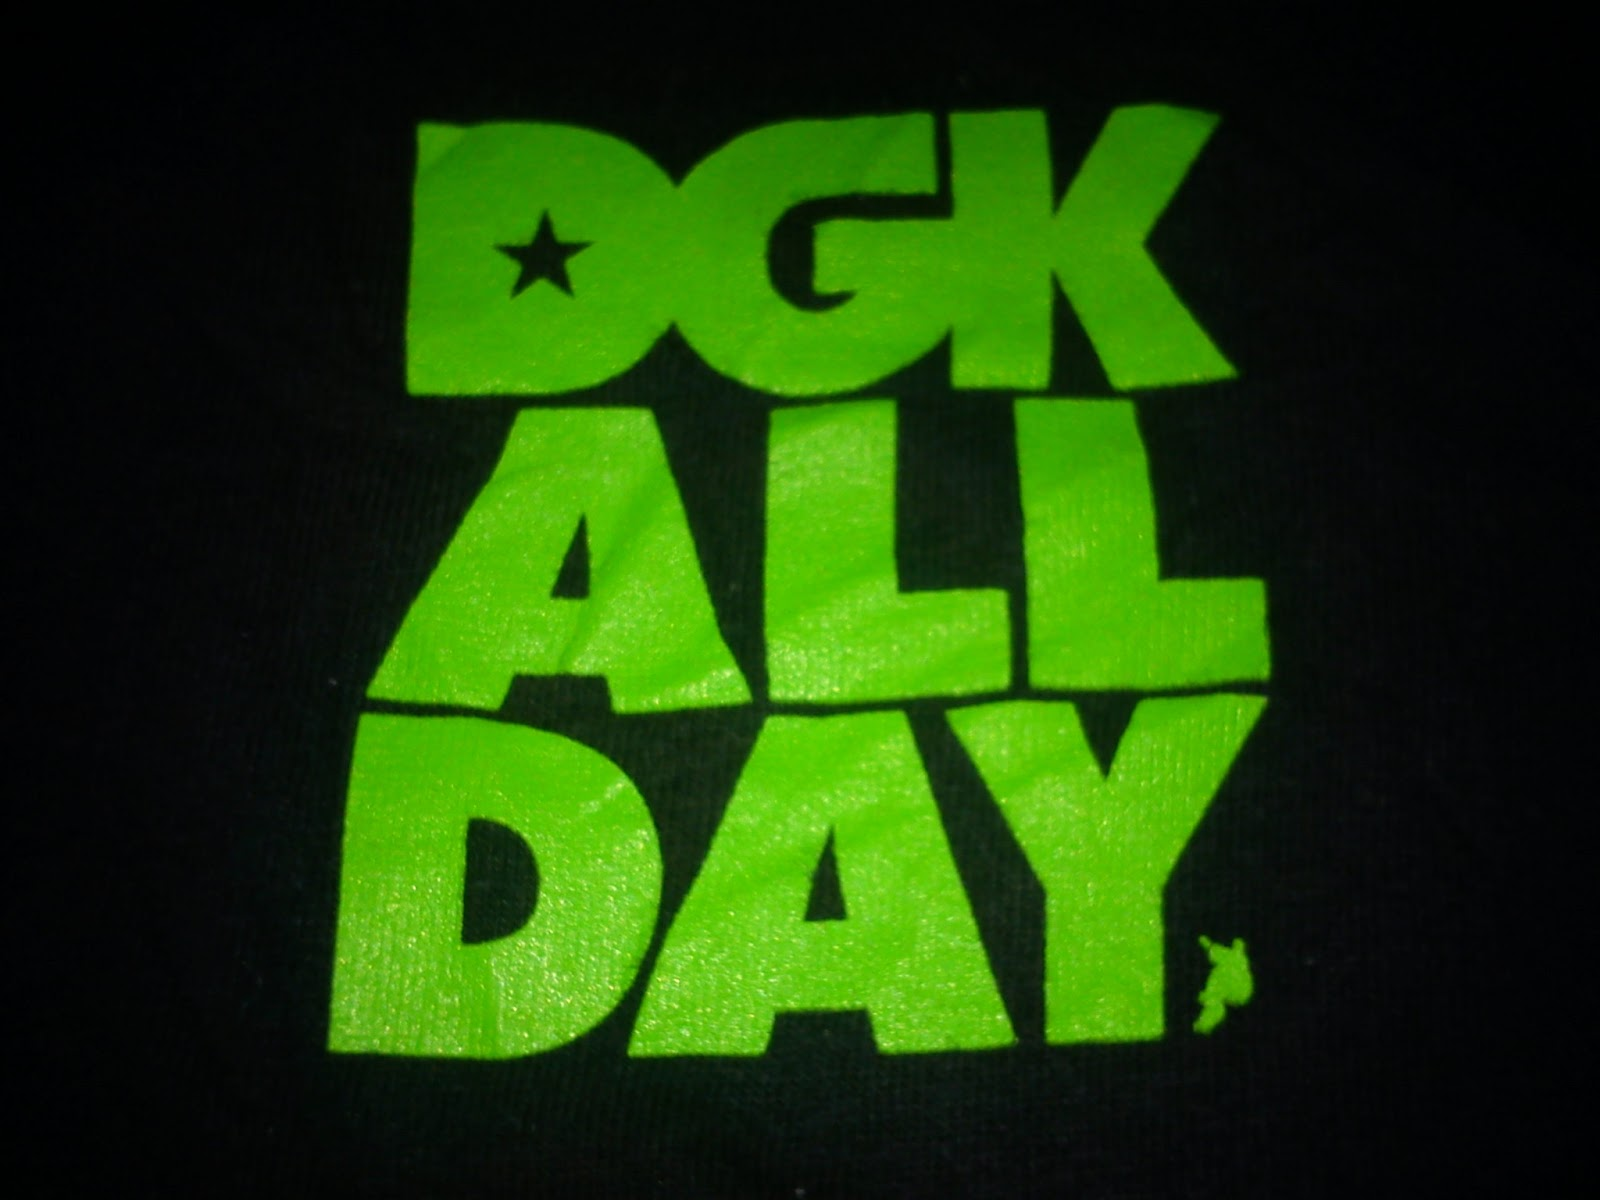 Dgk Wallpaper wl 1678 dgk all day by the 1600x1200